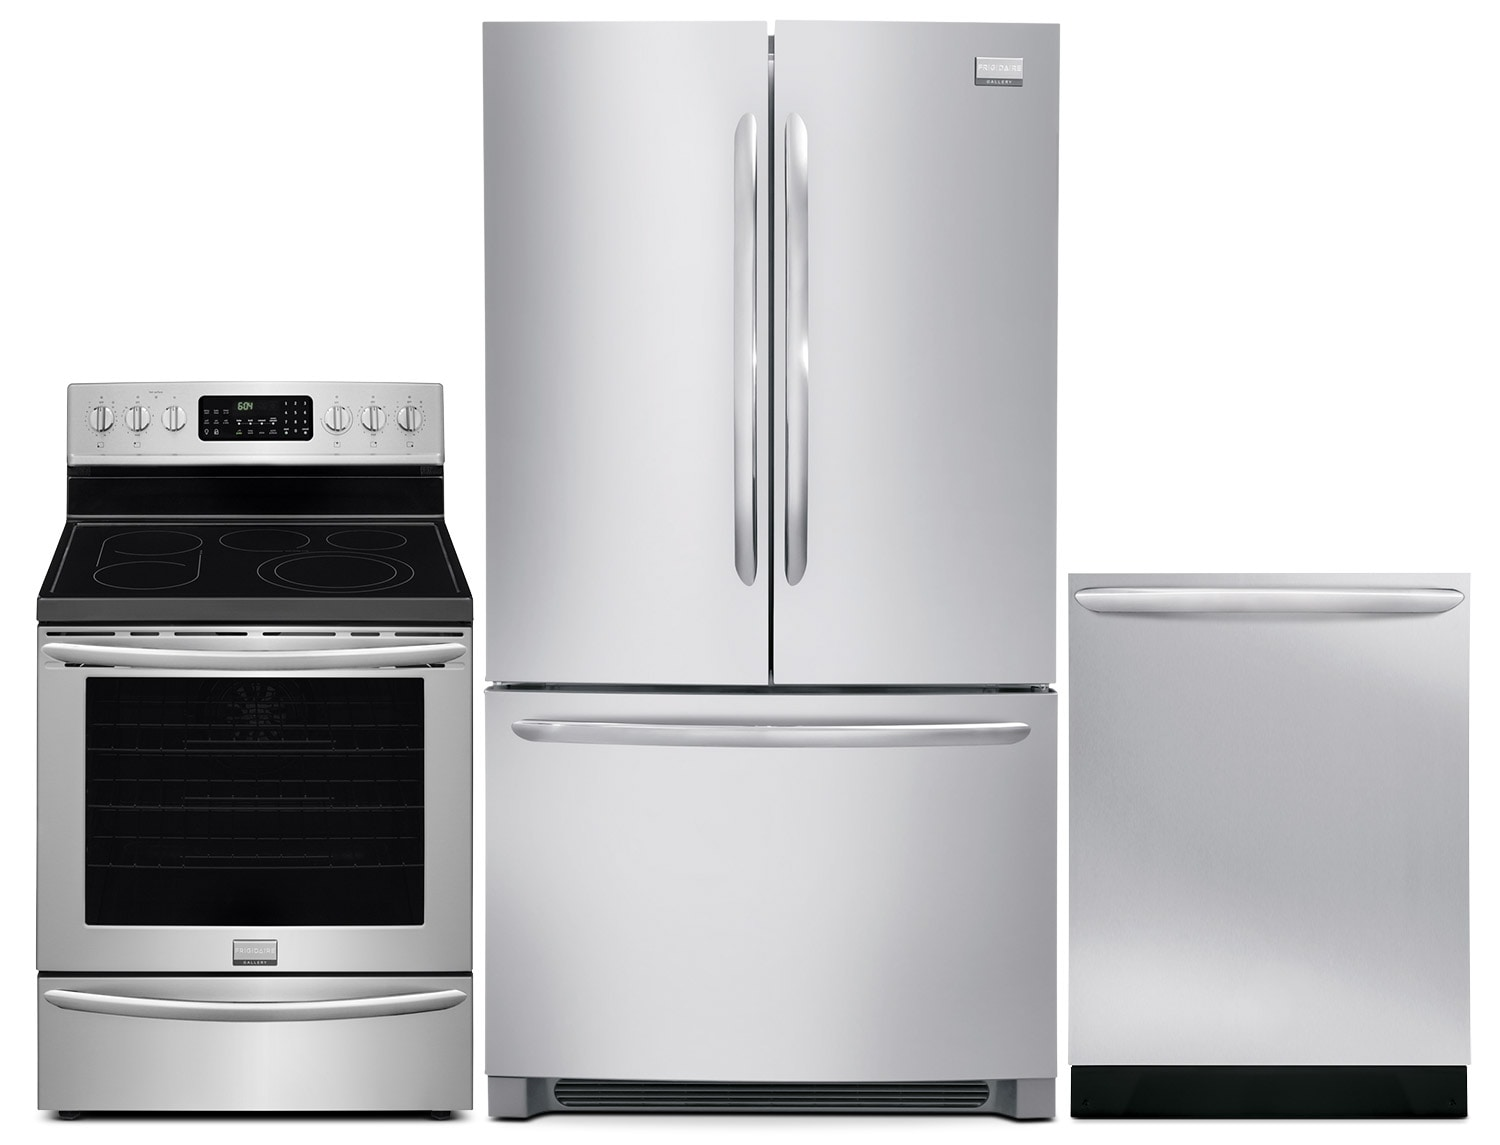 Frigidaire Gallery 27.8 Cu. Ft. Refrigerator, 5.8 Cu. Ft. Electric Range and Built-In Dishwasher